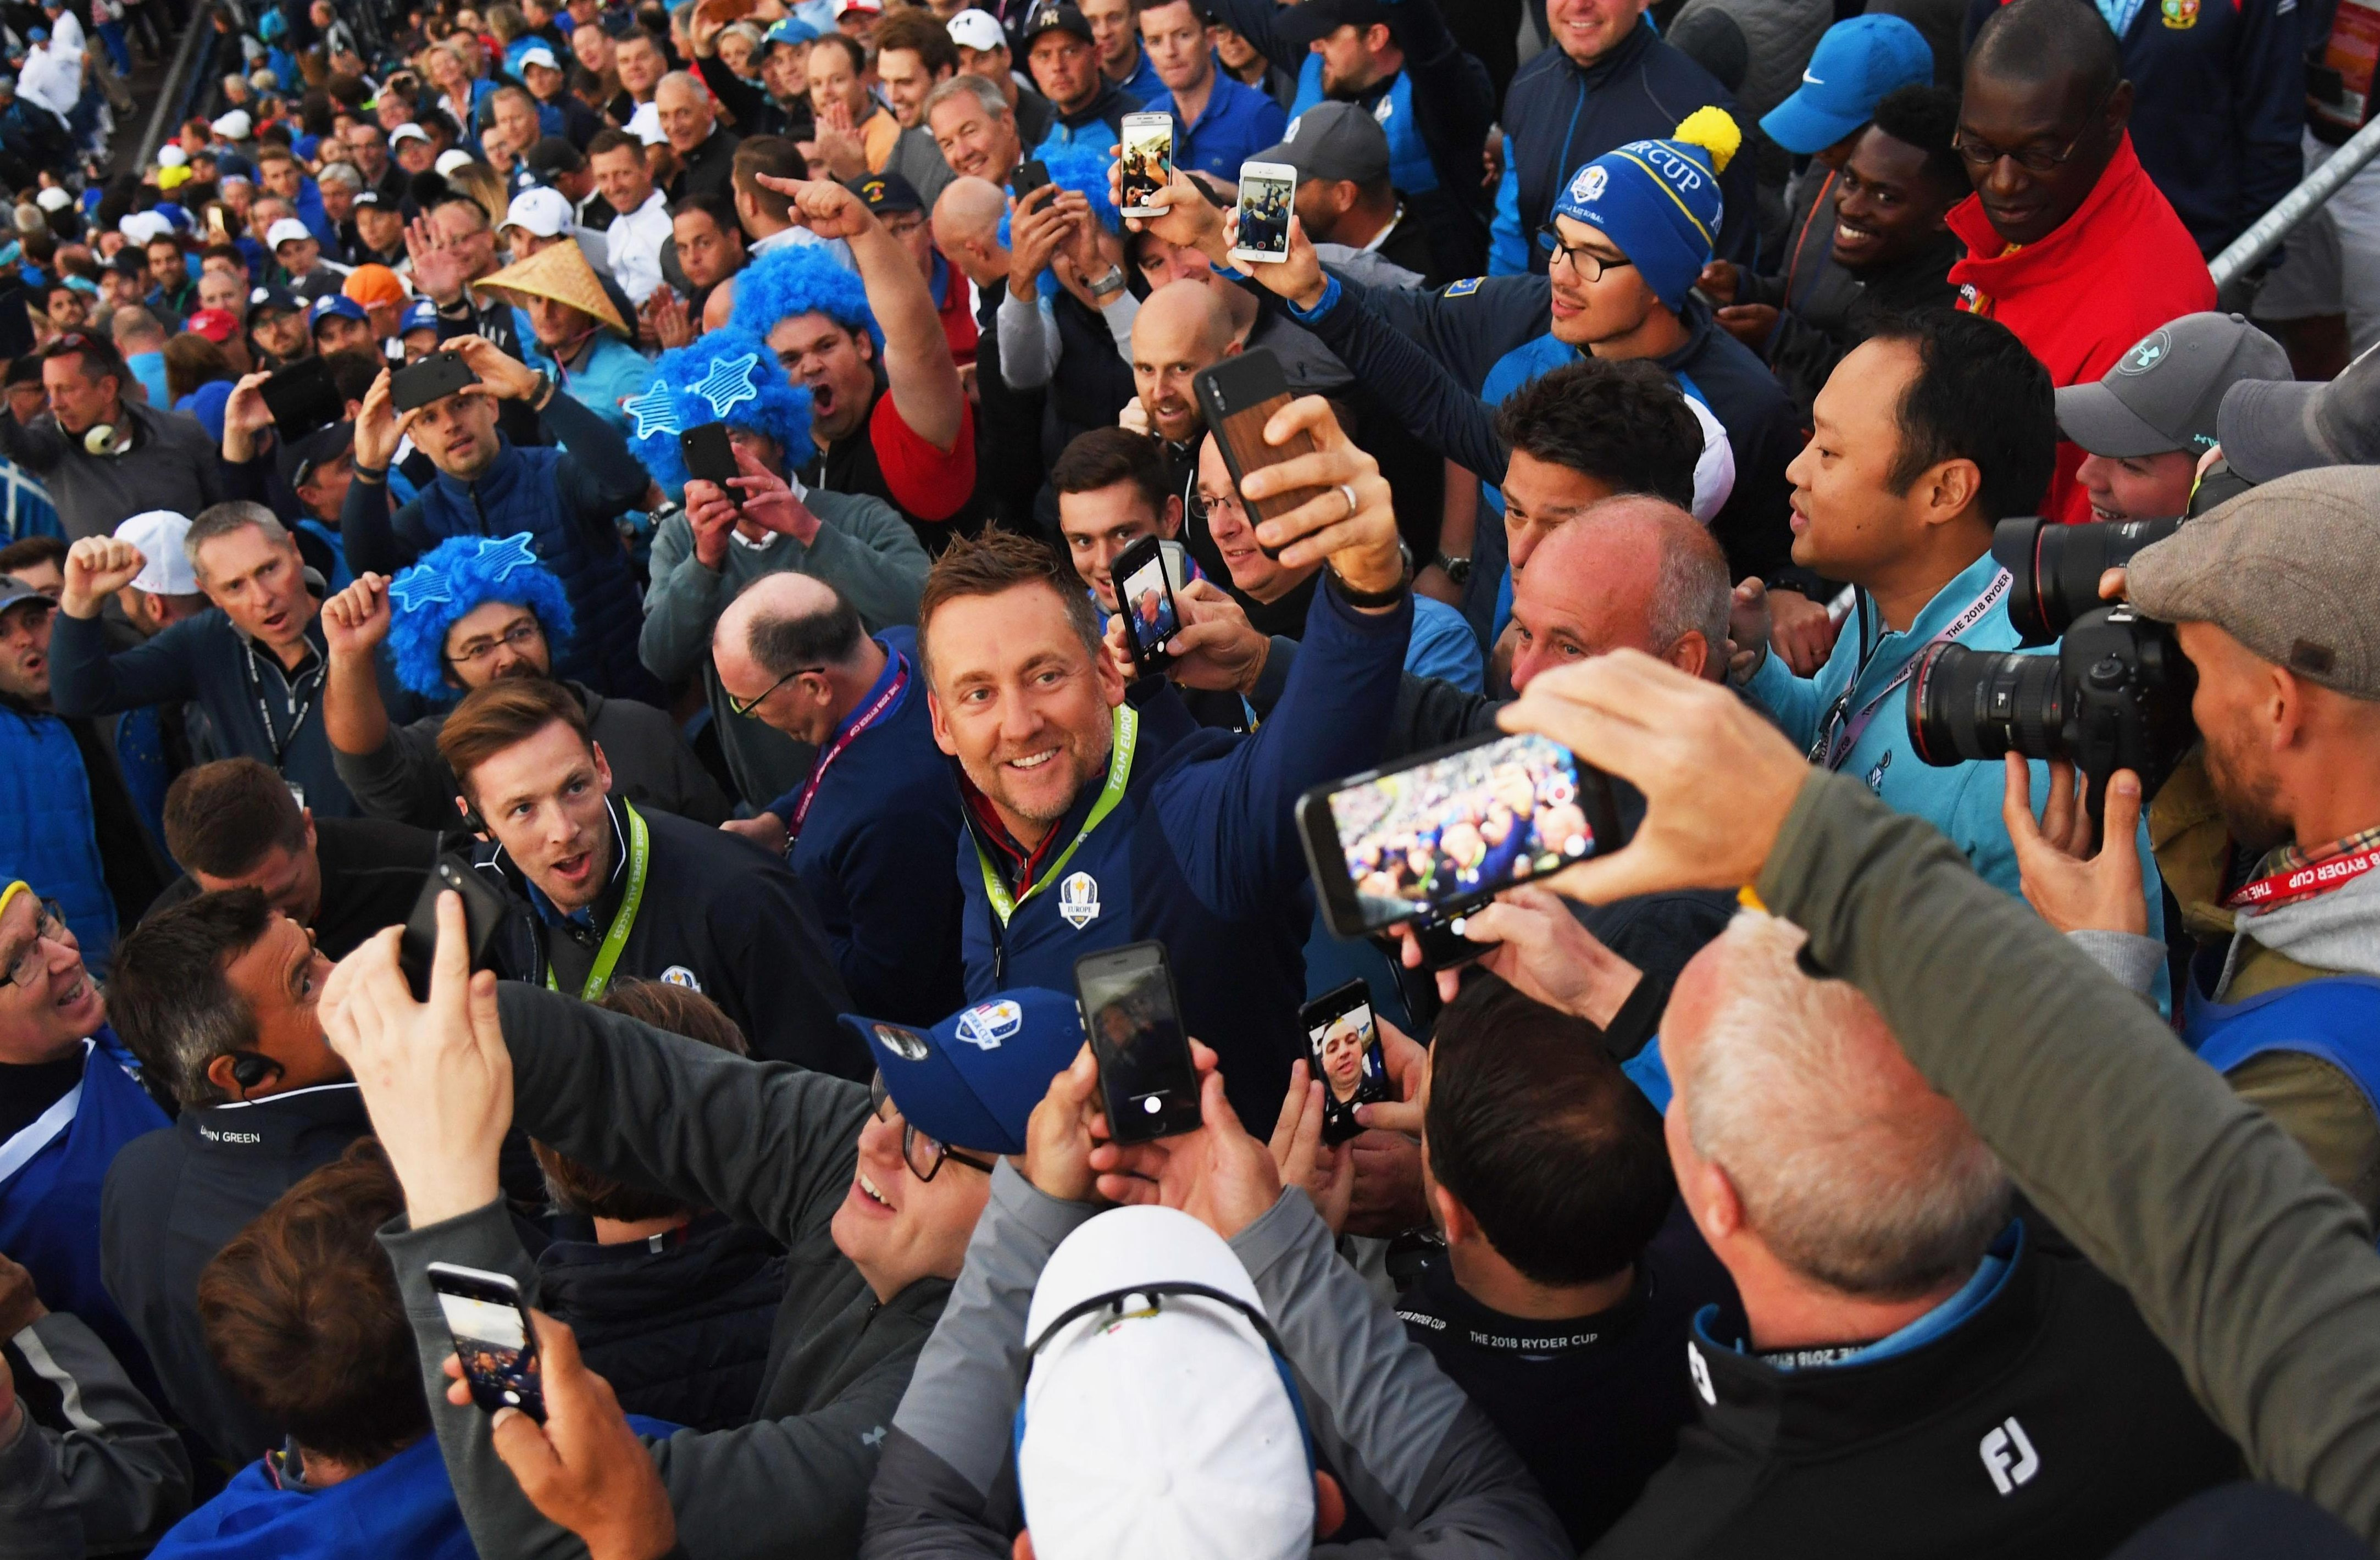 Poulter took this epic selfie with fans